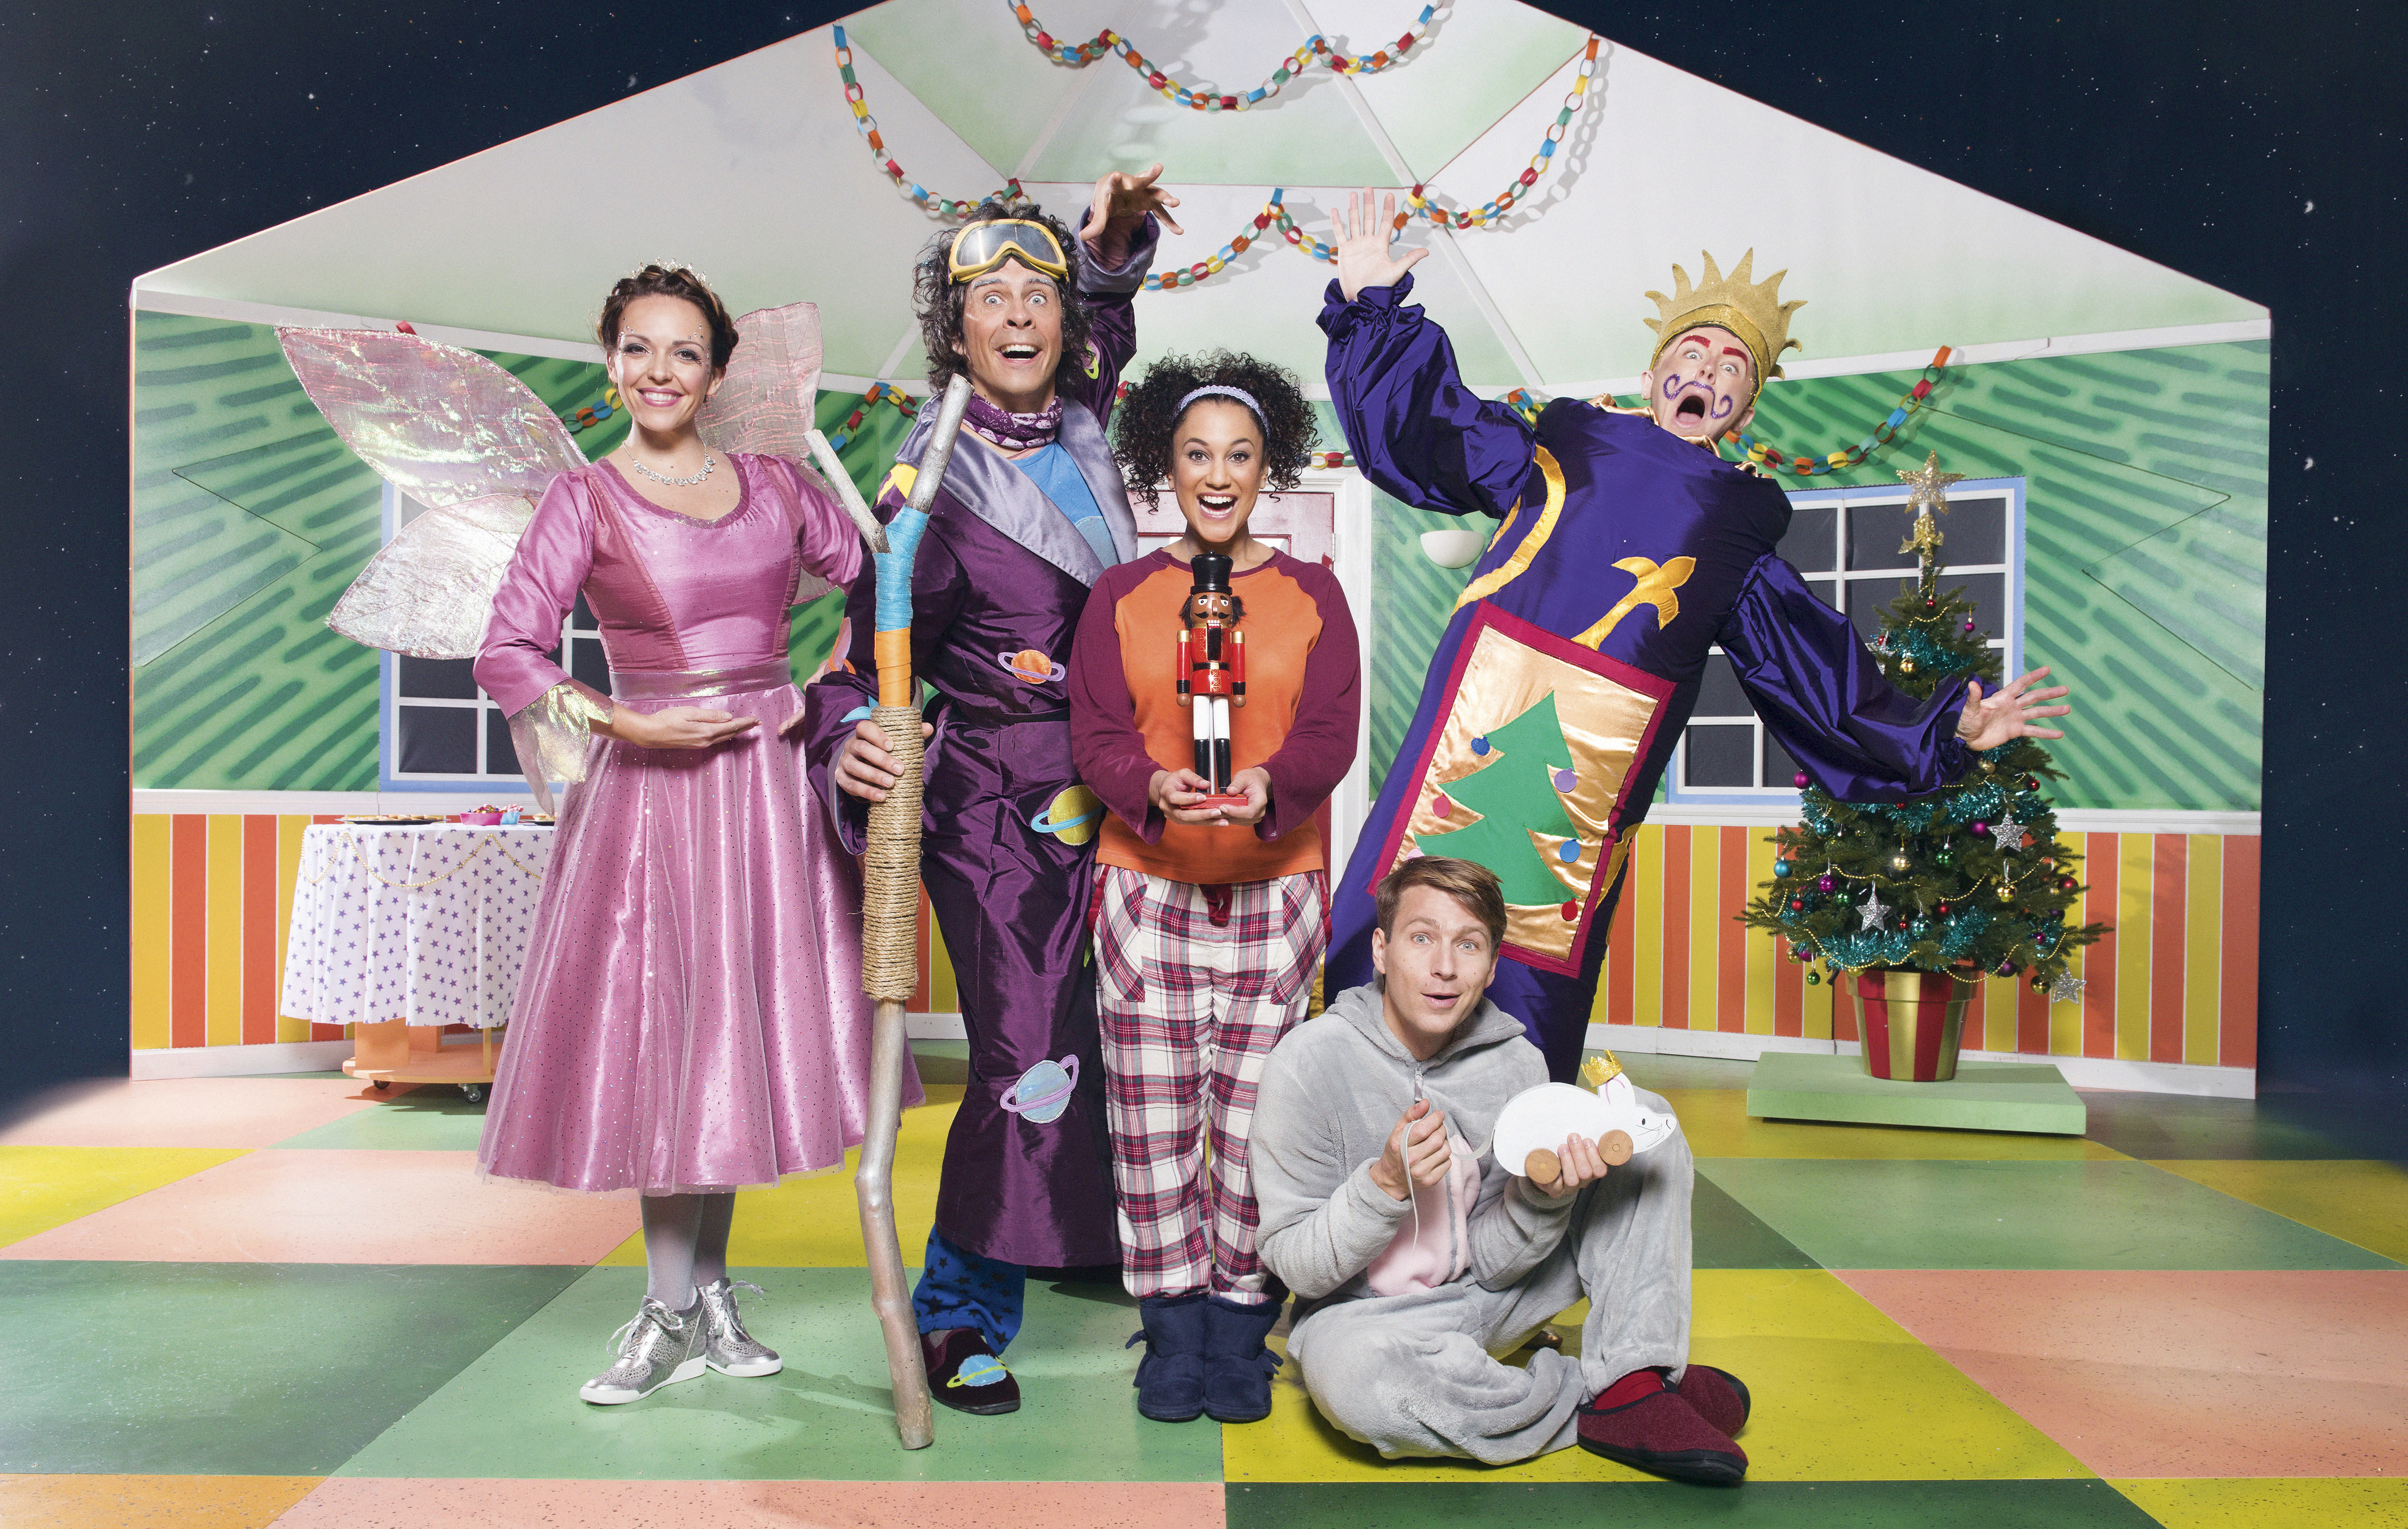 The CBeebies panto is always a highlight of the festive TV schedules